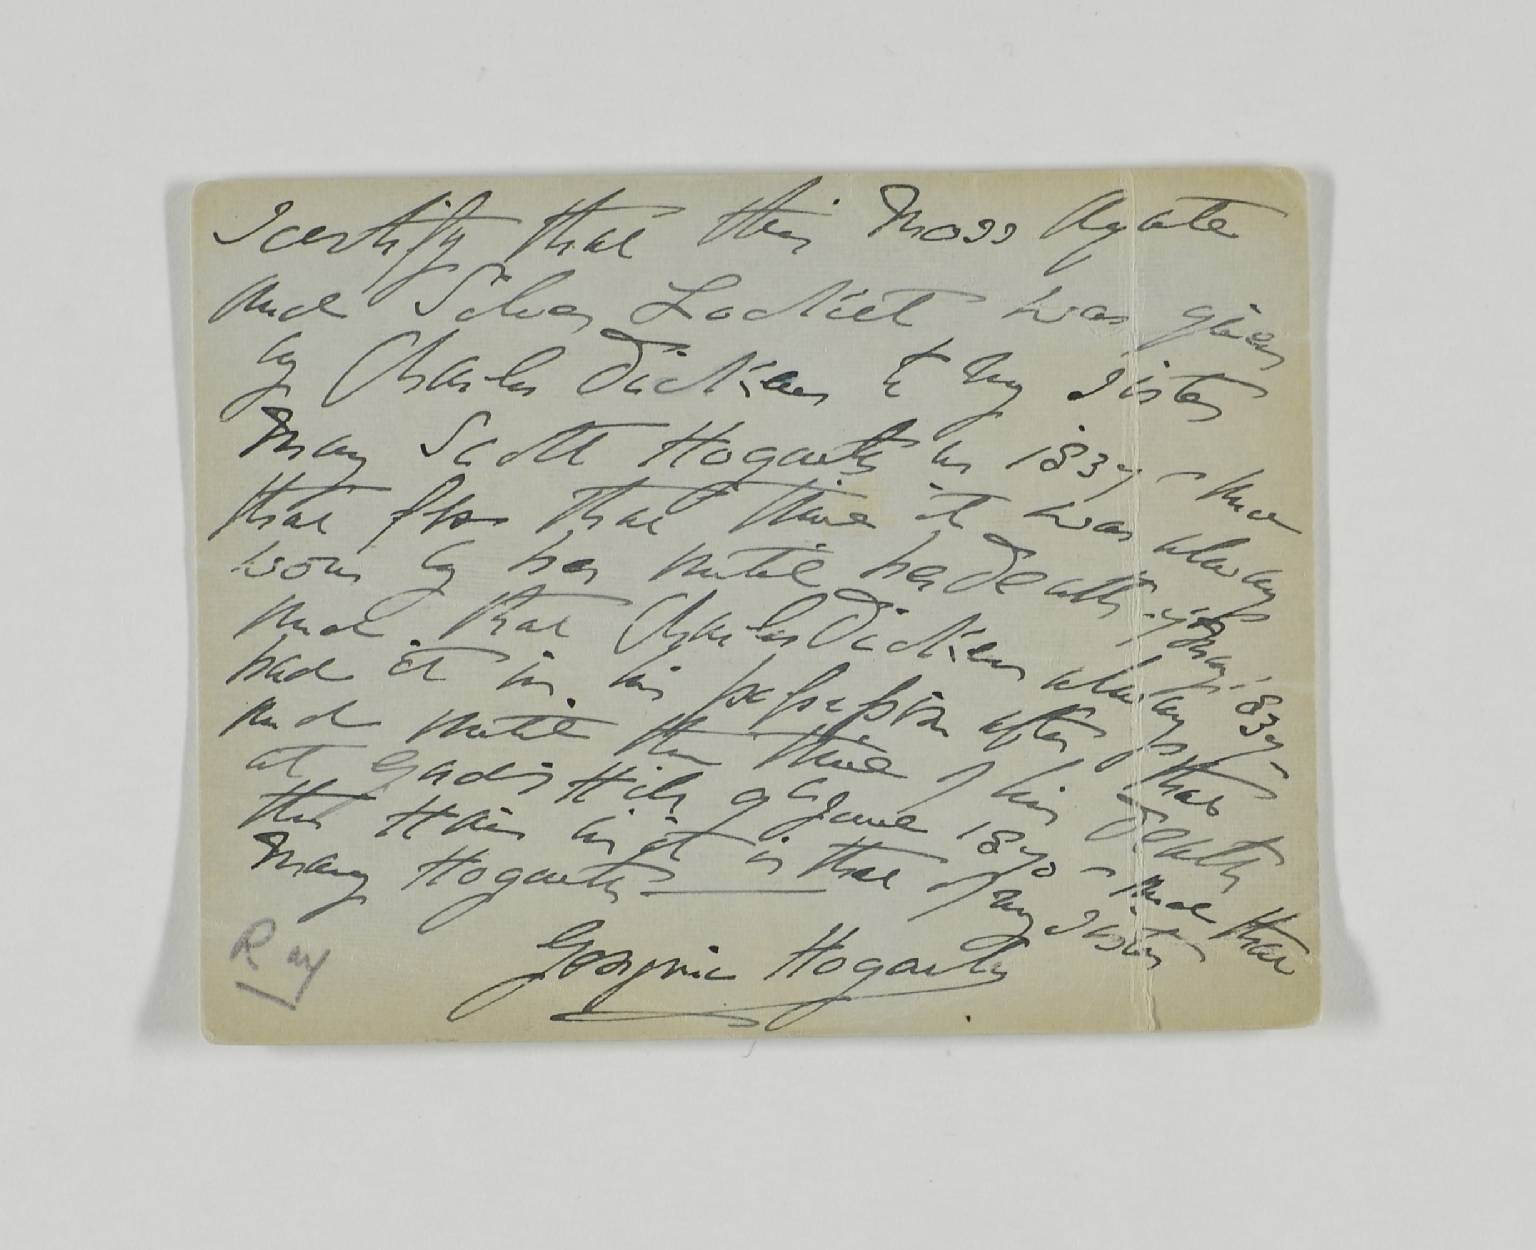 Collection of artworks, objects, playbills, letters associated with Charles Dickens, his life and work